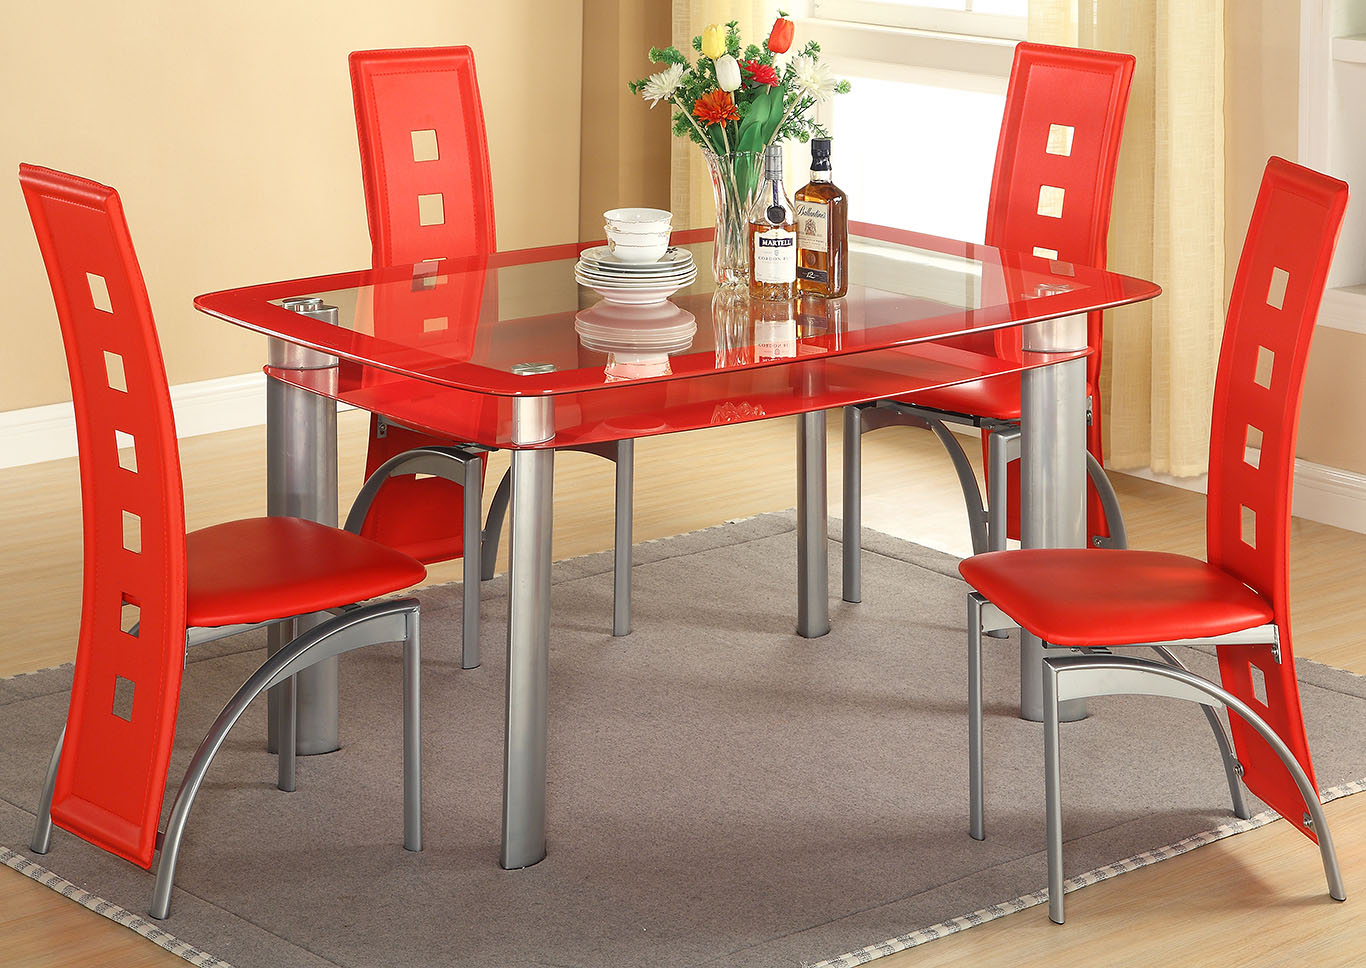 Red Edge Glass Top Dining TableGlobal Trading